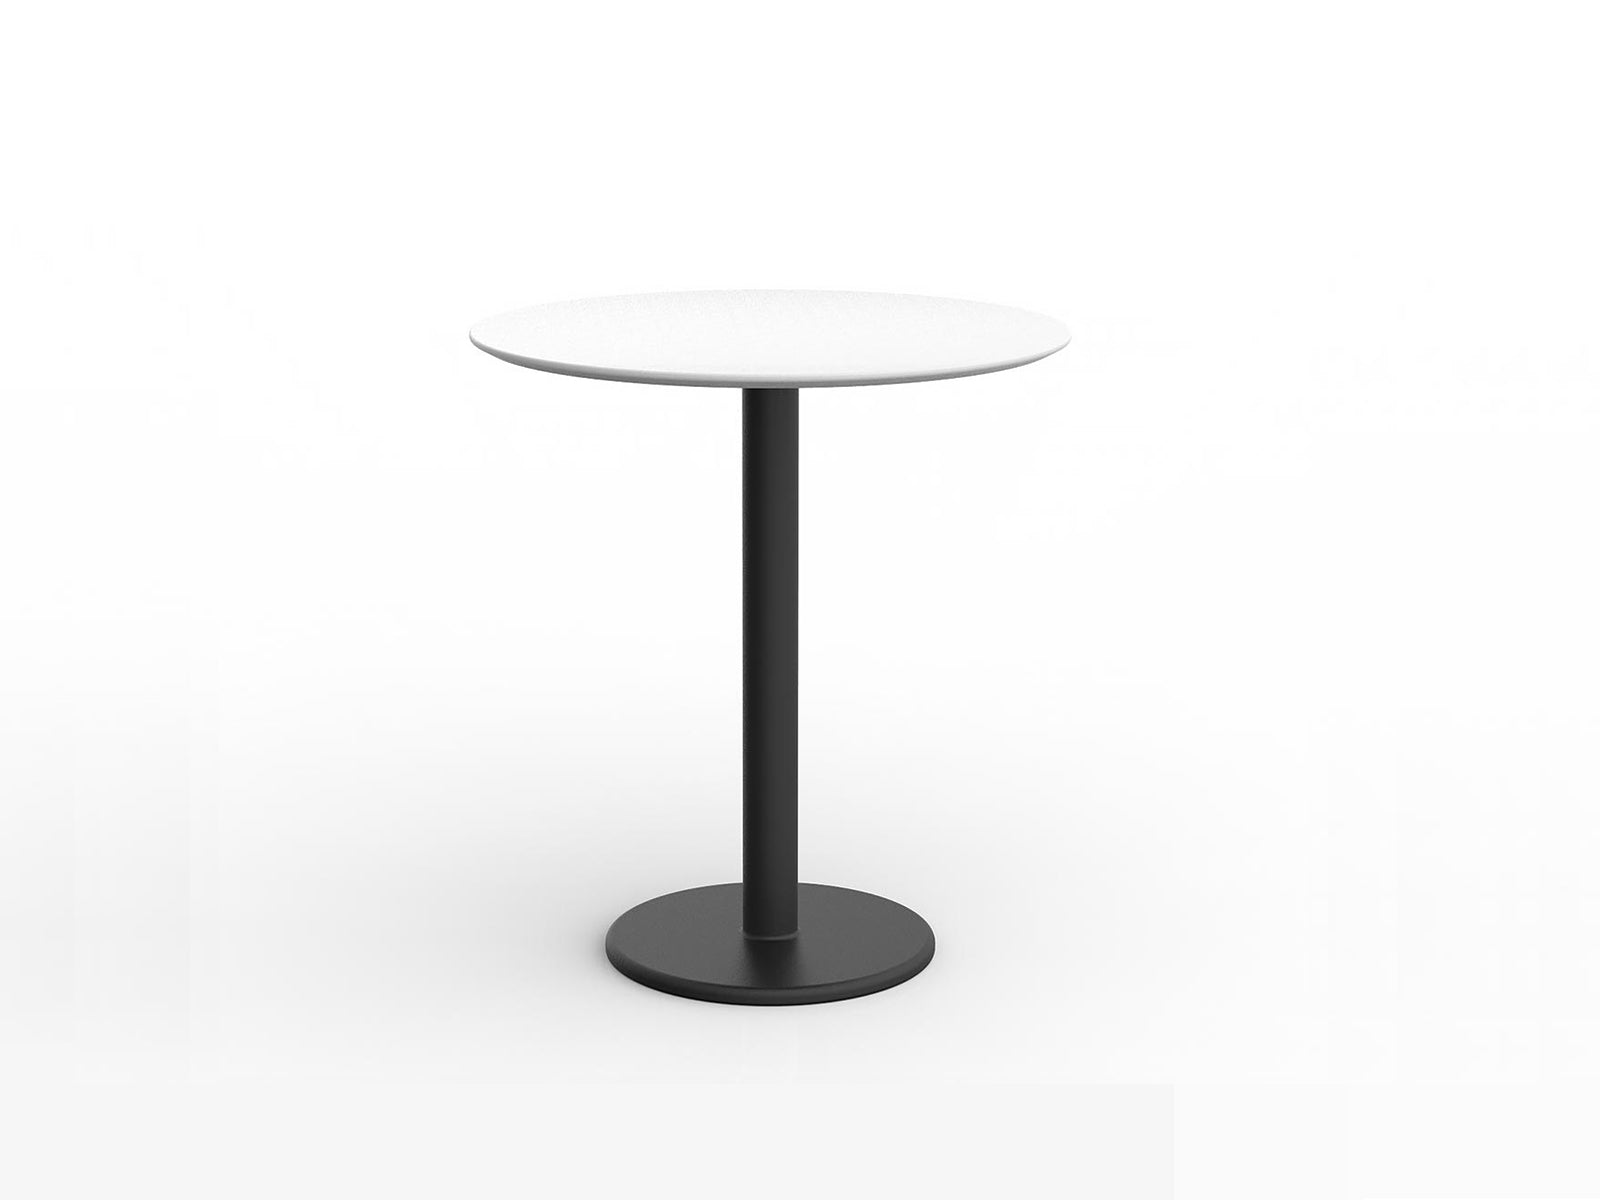 Loop Round 105cm Standing Table - Workspace Furniture Home and Office Bar Leaners